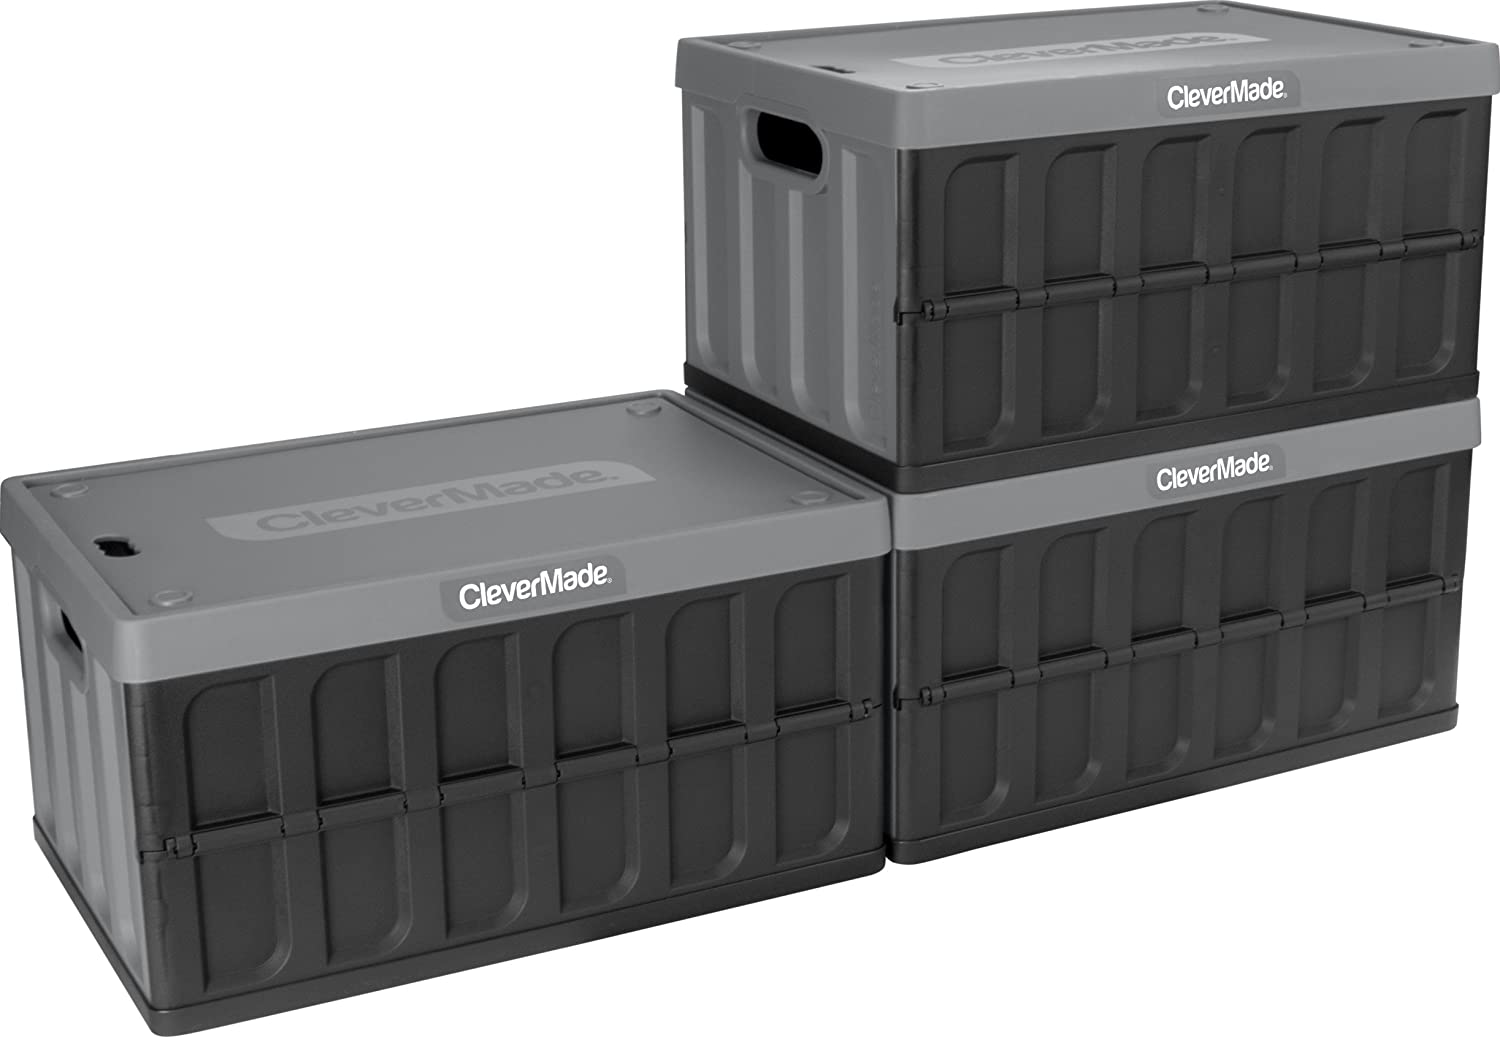 CleverMade 46L Collapsible Storage Bins with Lids - Folding Plastic Stackable Utility Crates, Solid Wall CleverCrates, 3 Pack, Charcoal